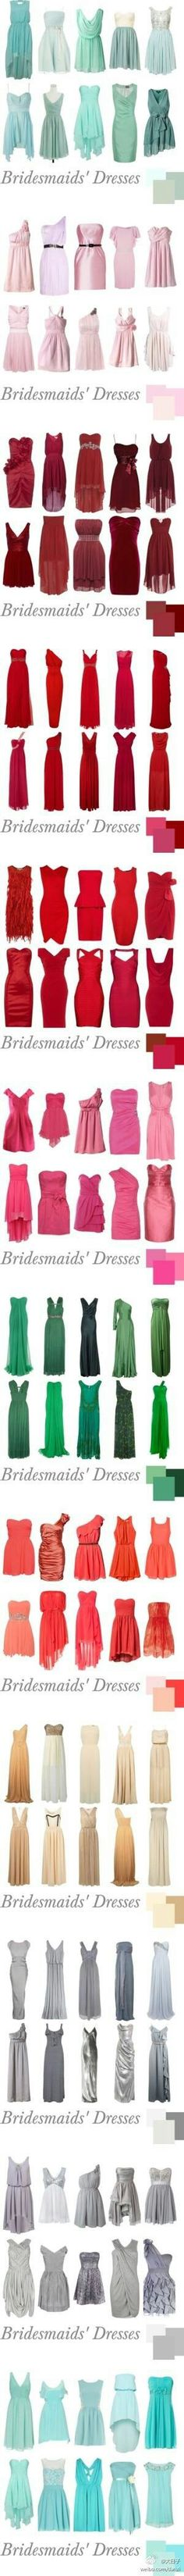 Dozens shades of gowns